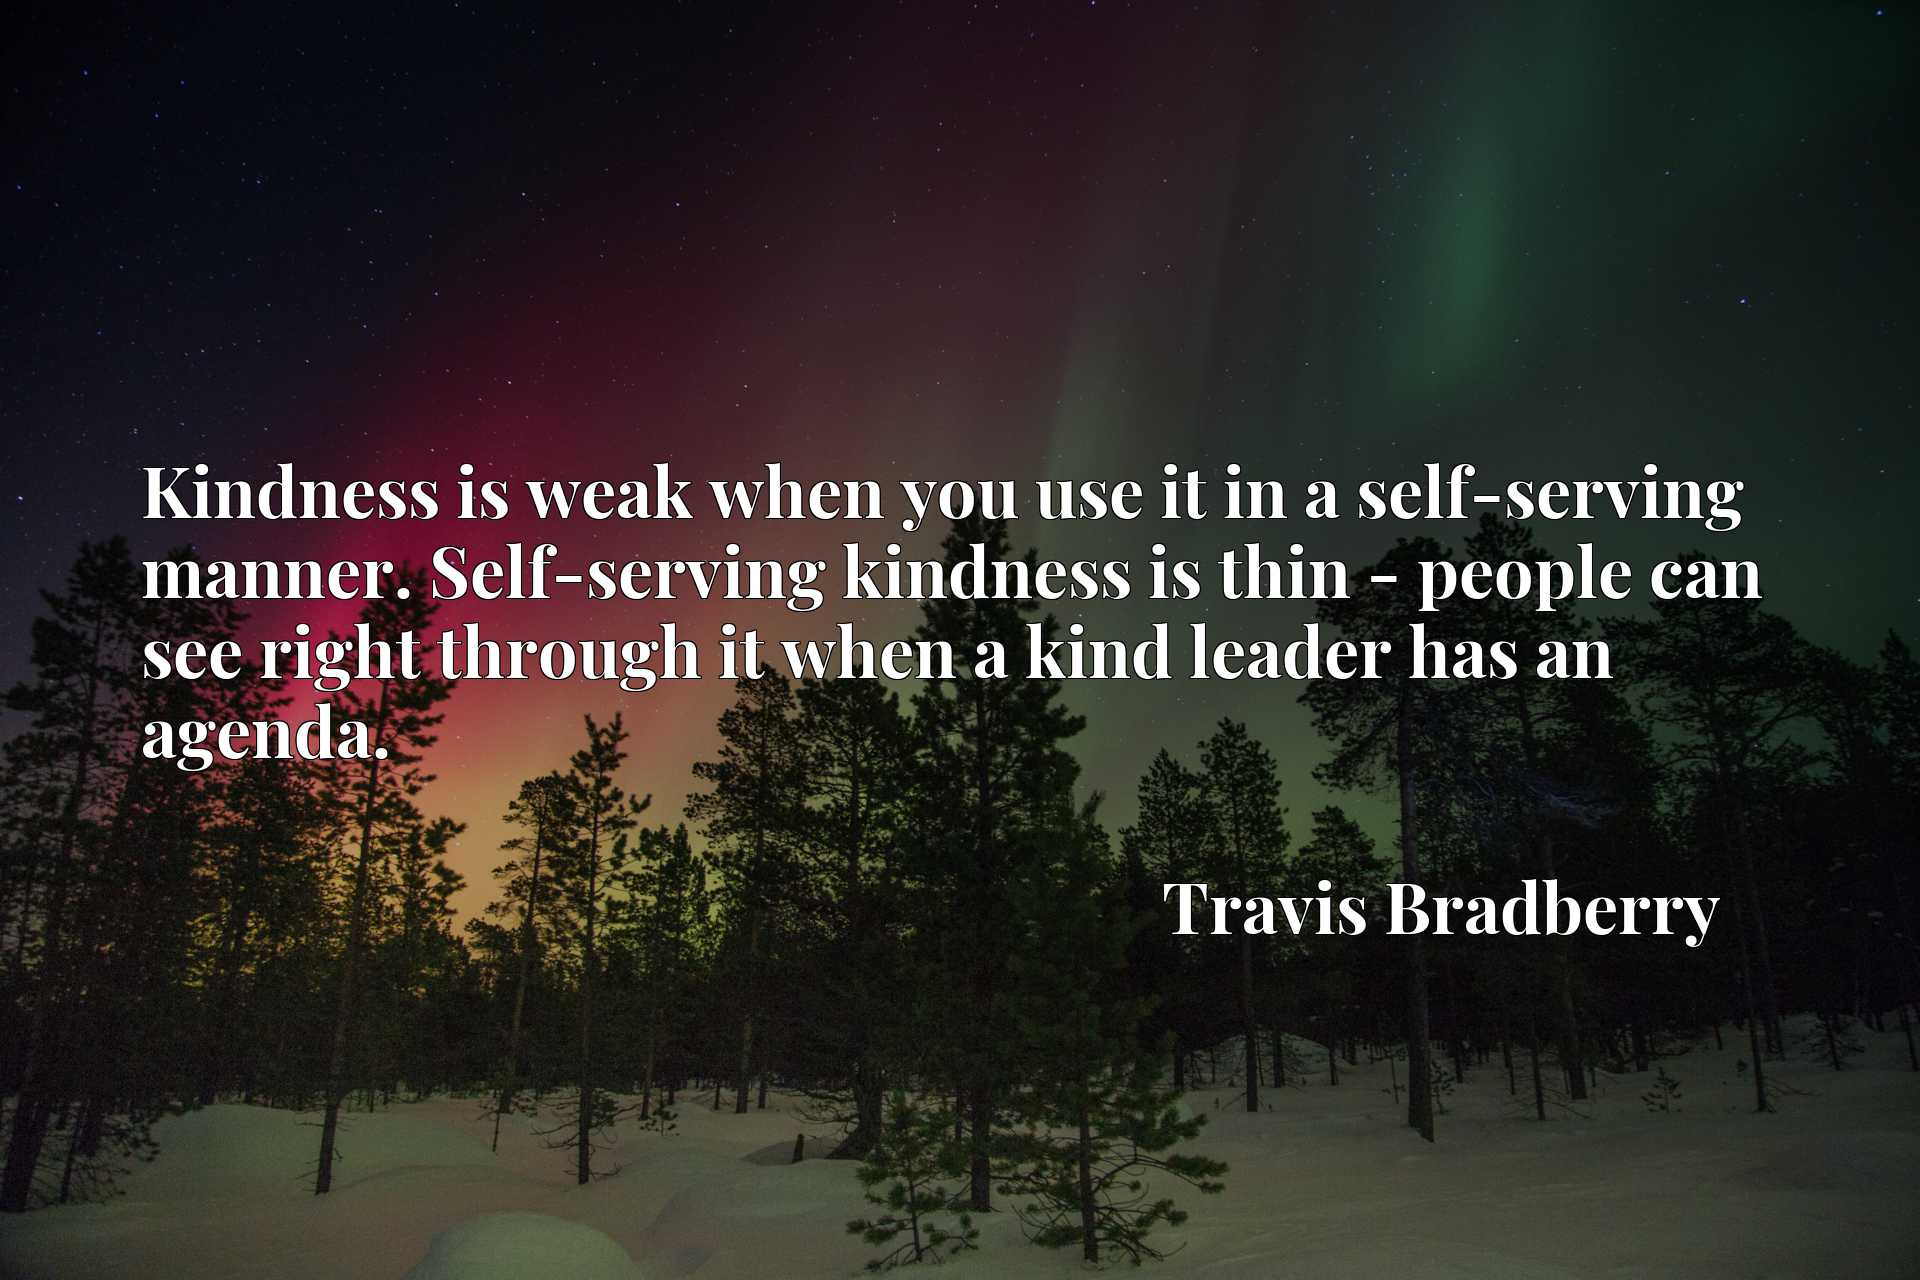 Kindness is weak when you use it in a self-serving manner. Self-serving kindness is thin - people can see right through it when a kind leader has an agenda.